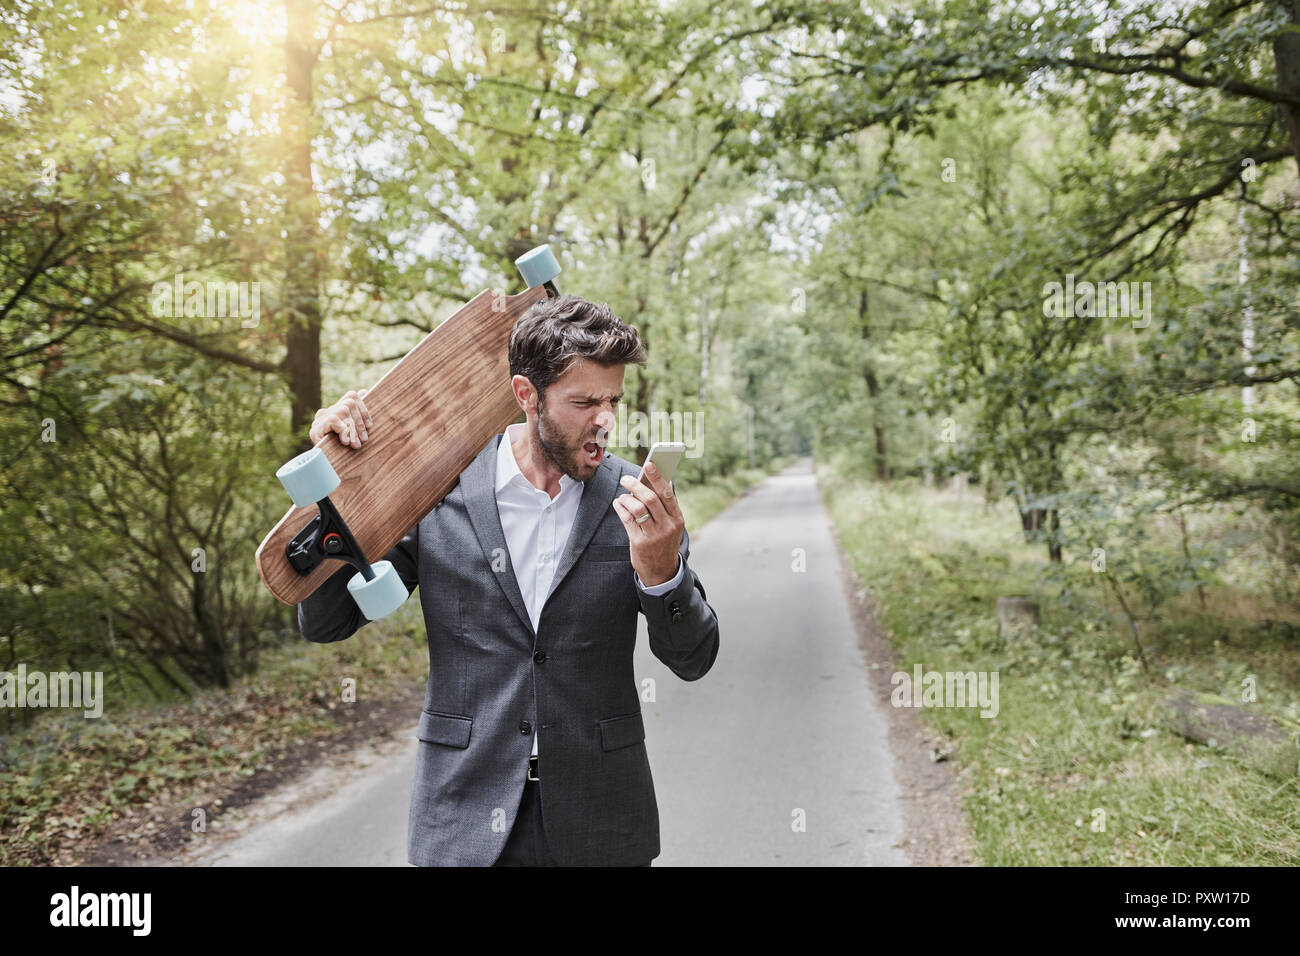 Angry businessman with skateboard shouting at smartphone on rural road - Stock Image